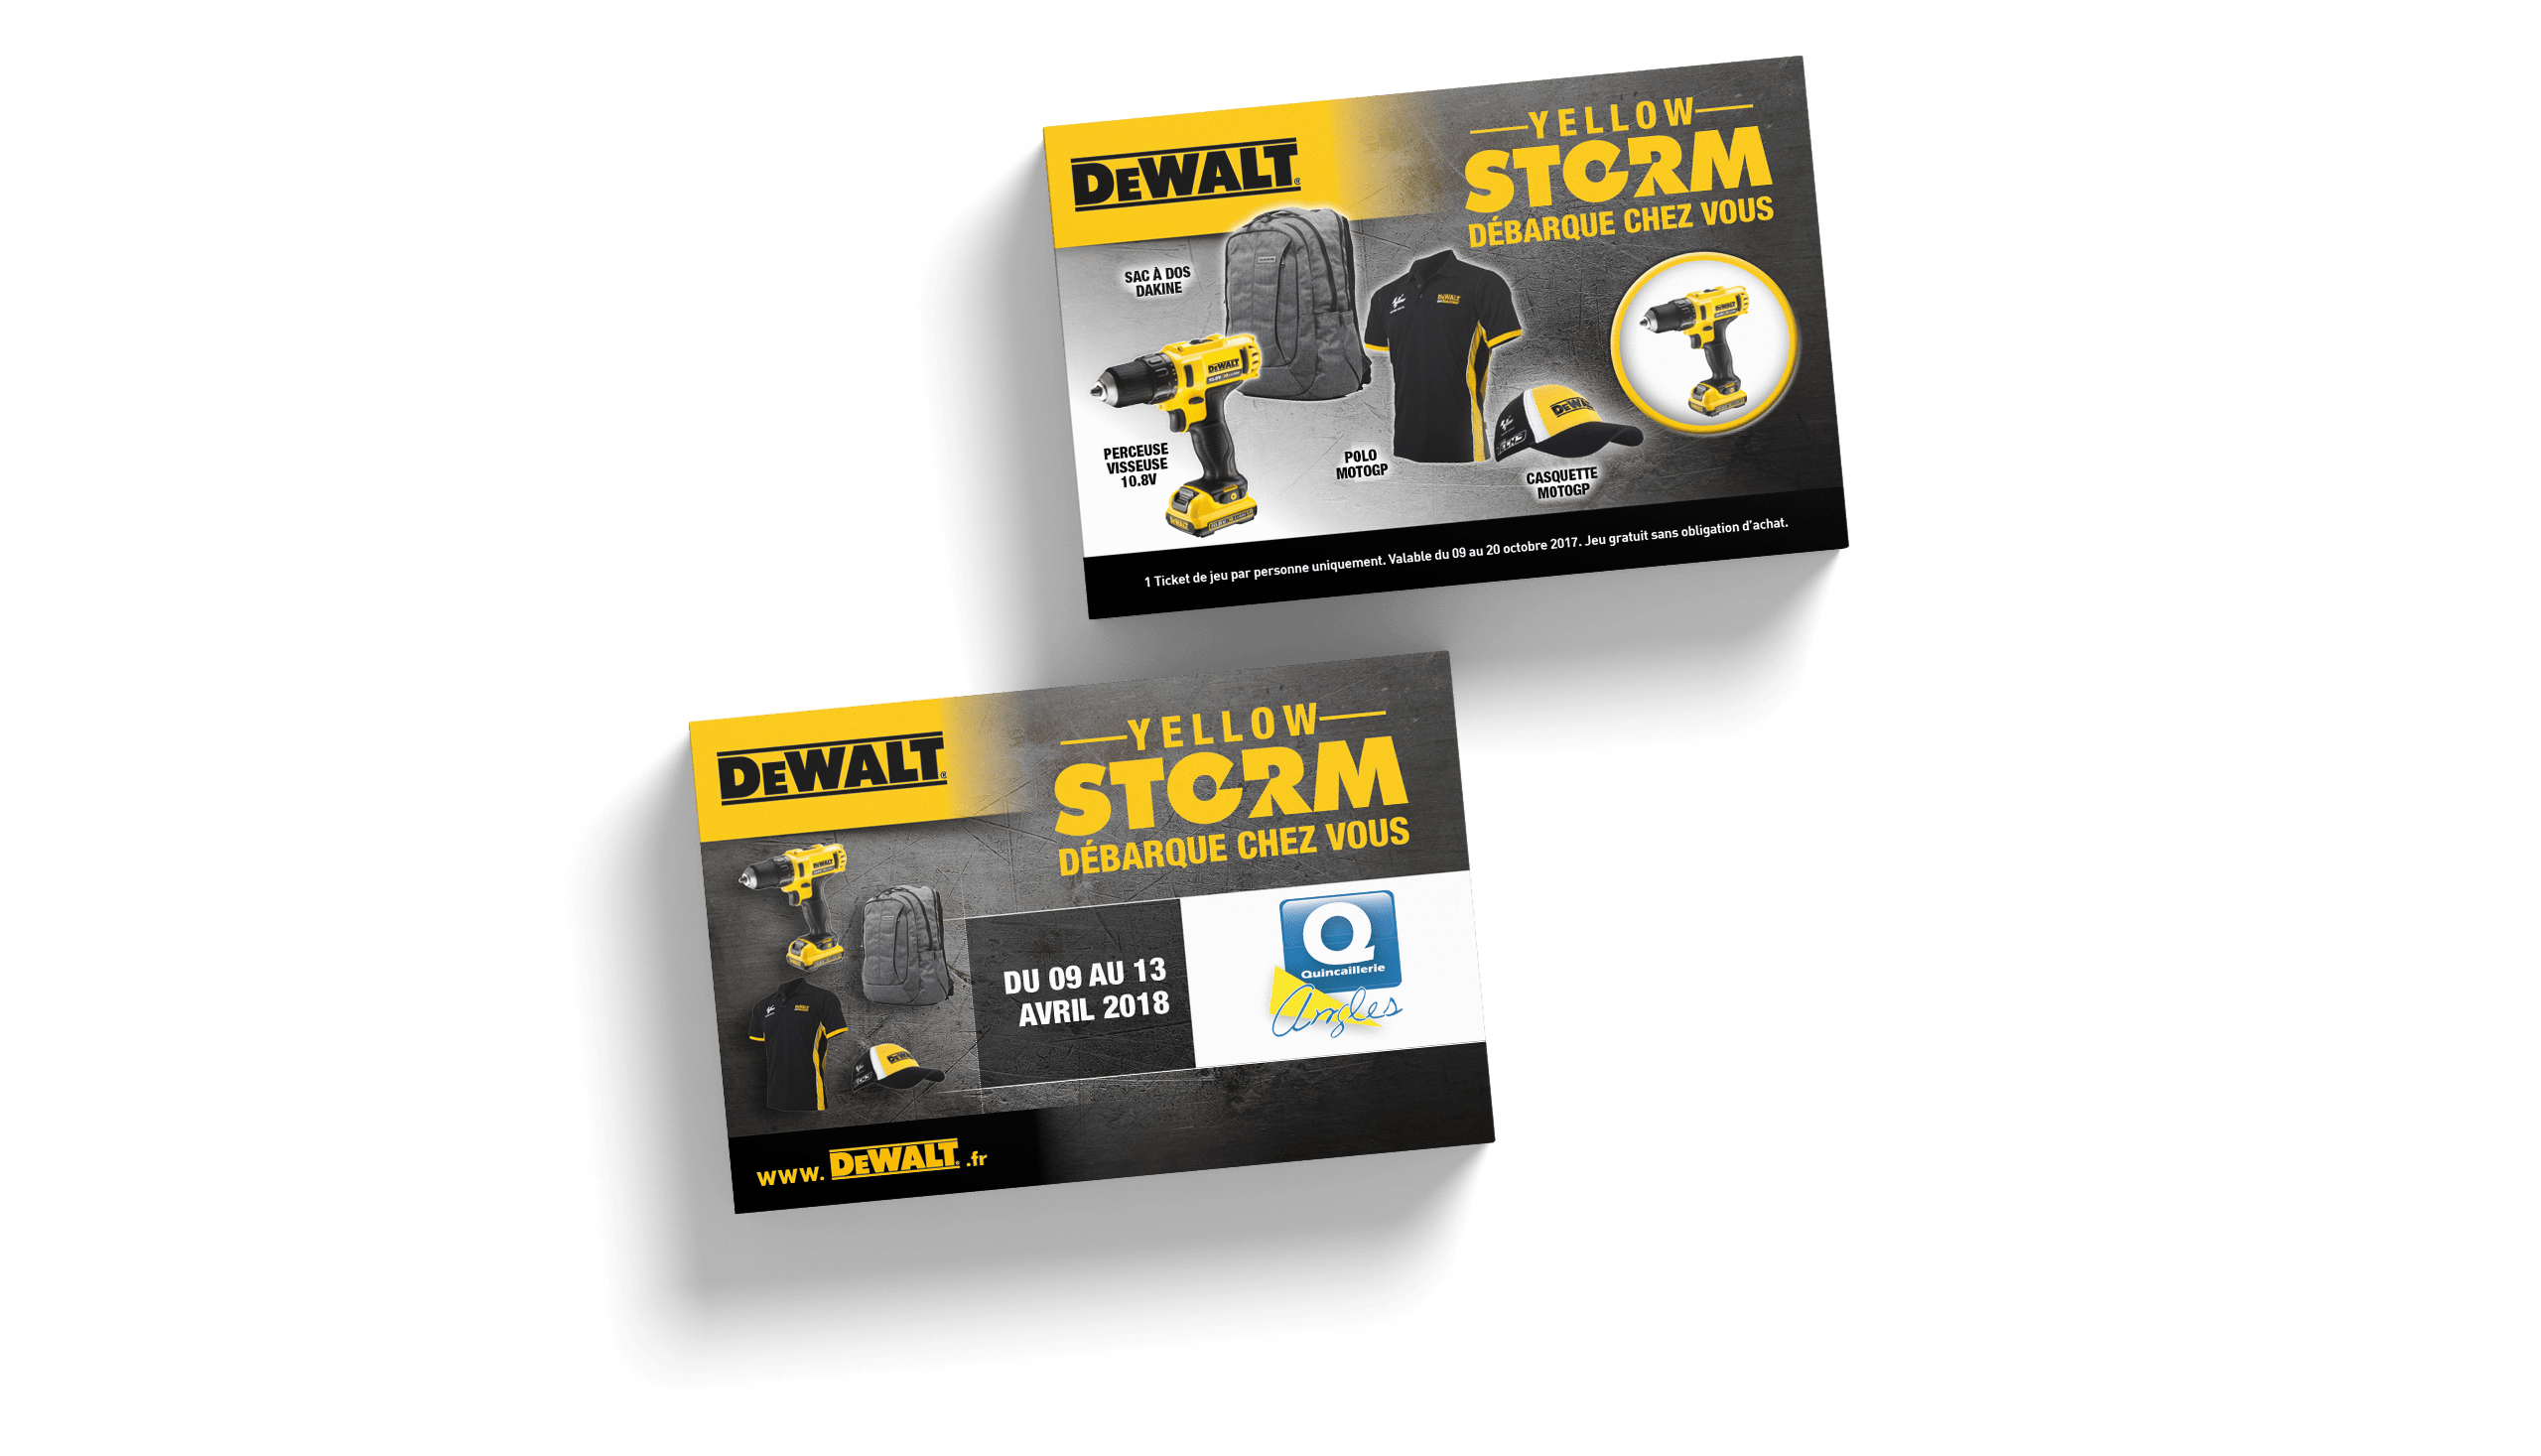 yellowstorm-dewalt